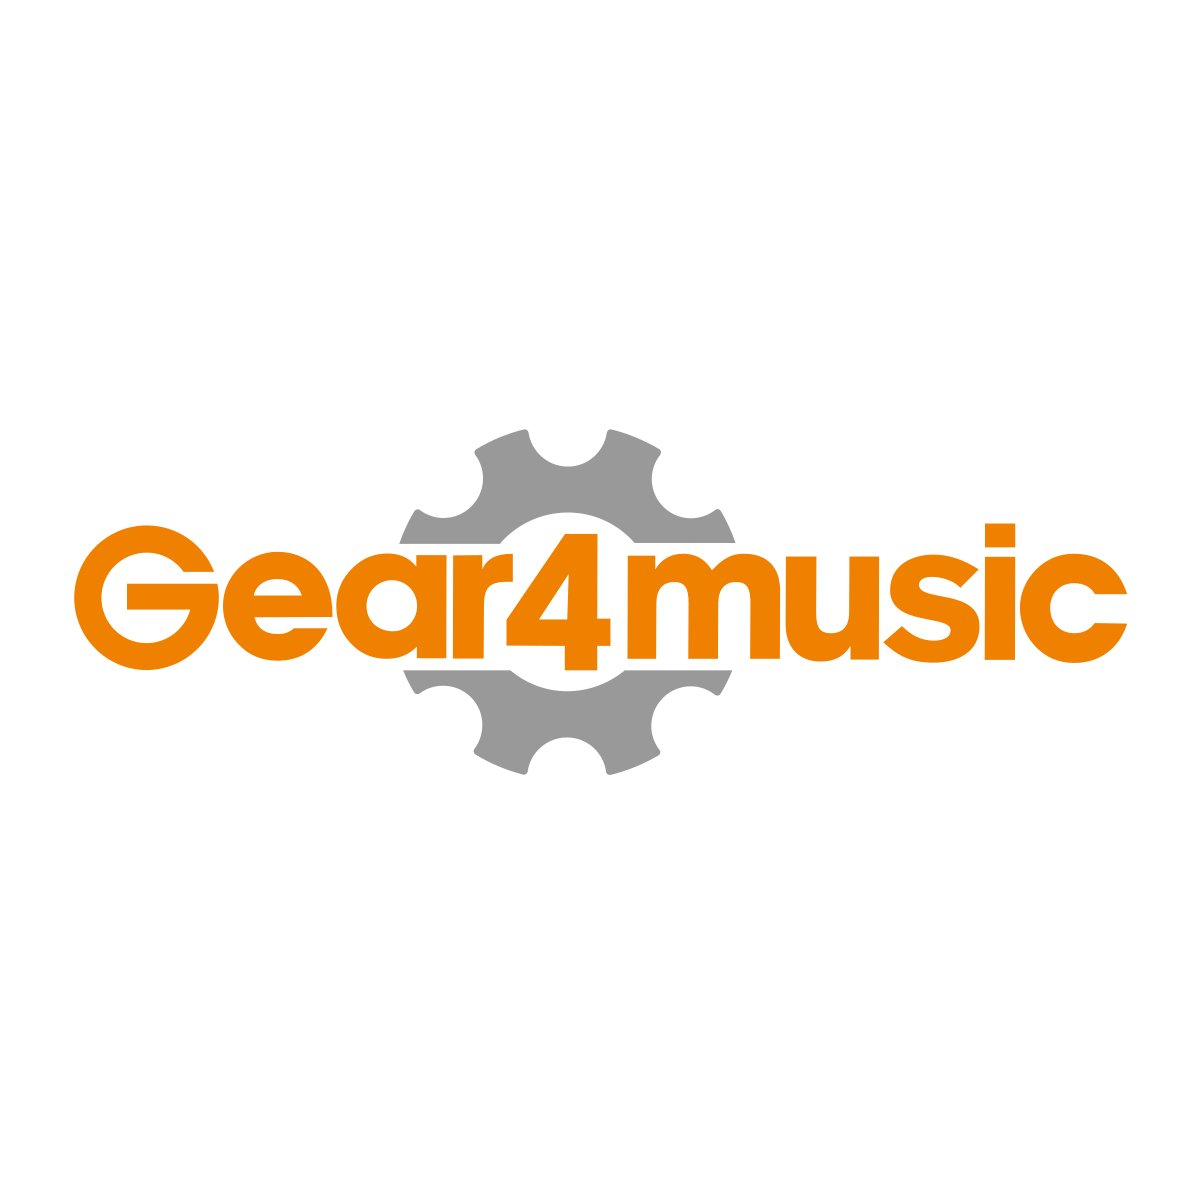 Diatonisk dragspel av Gear4Music, 12 bas